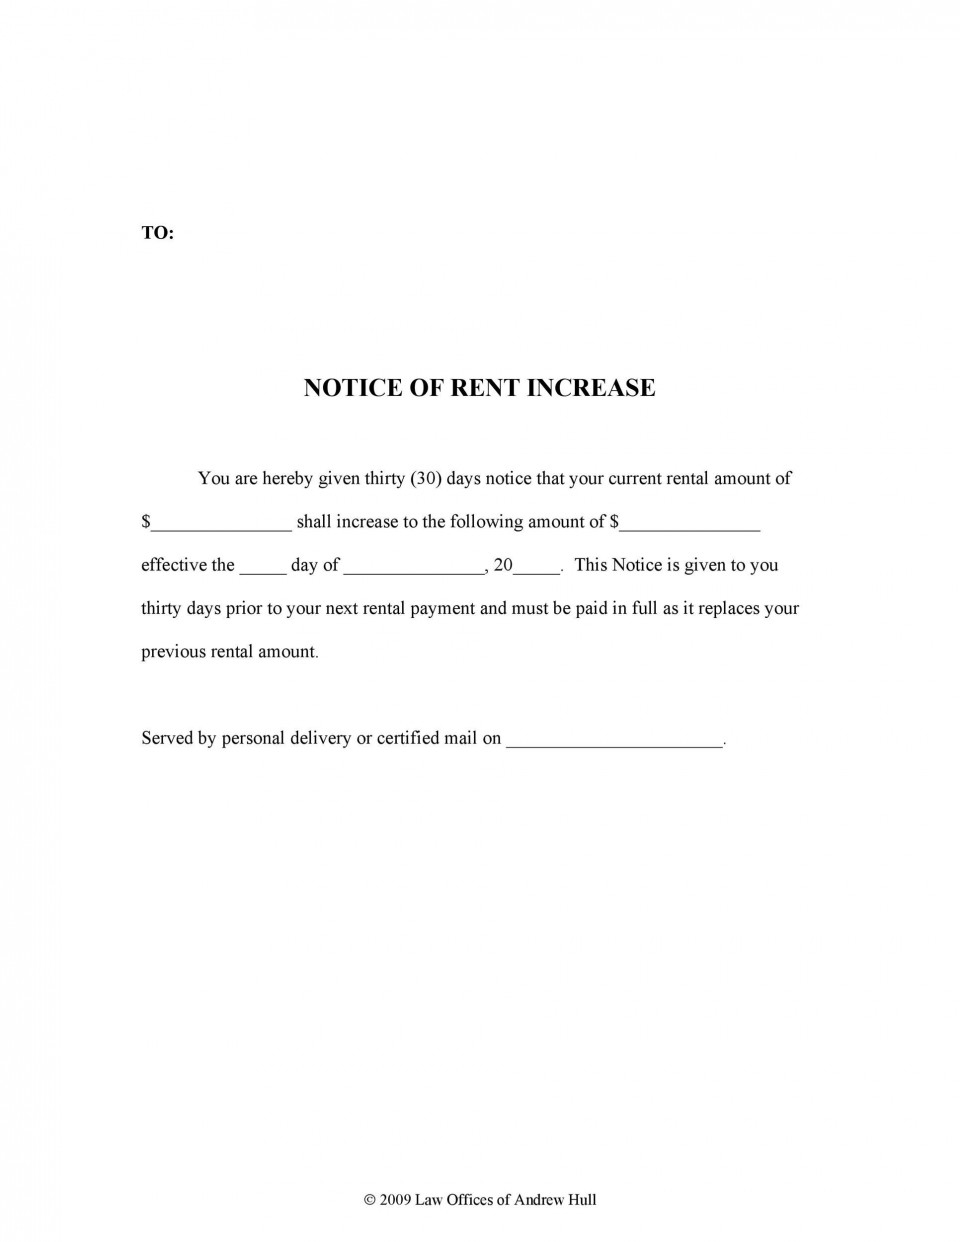 008 Wondrou Rent Increase Letter Template High Resolution  Rental South Africa Nz Scotland960